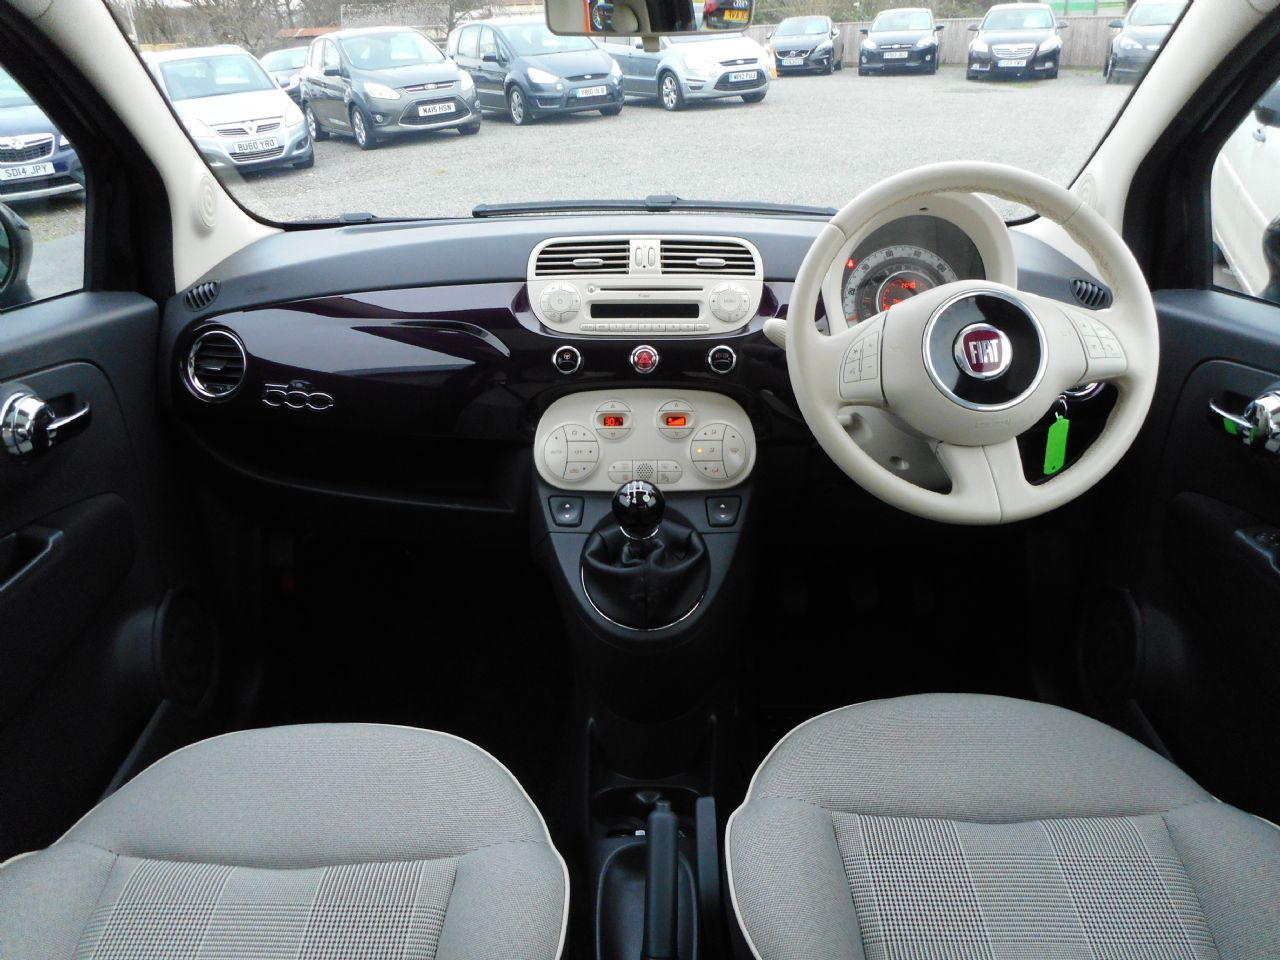 FIAT 500 1.2i Lounge S/S (2015) - Picture 8